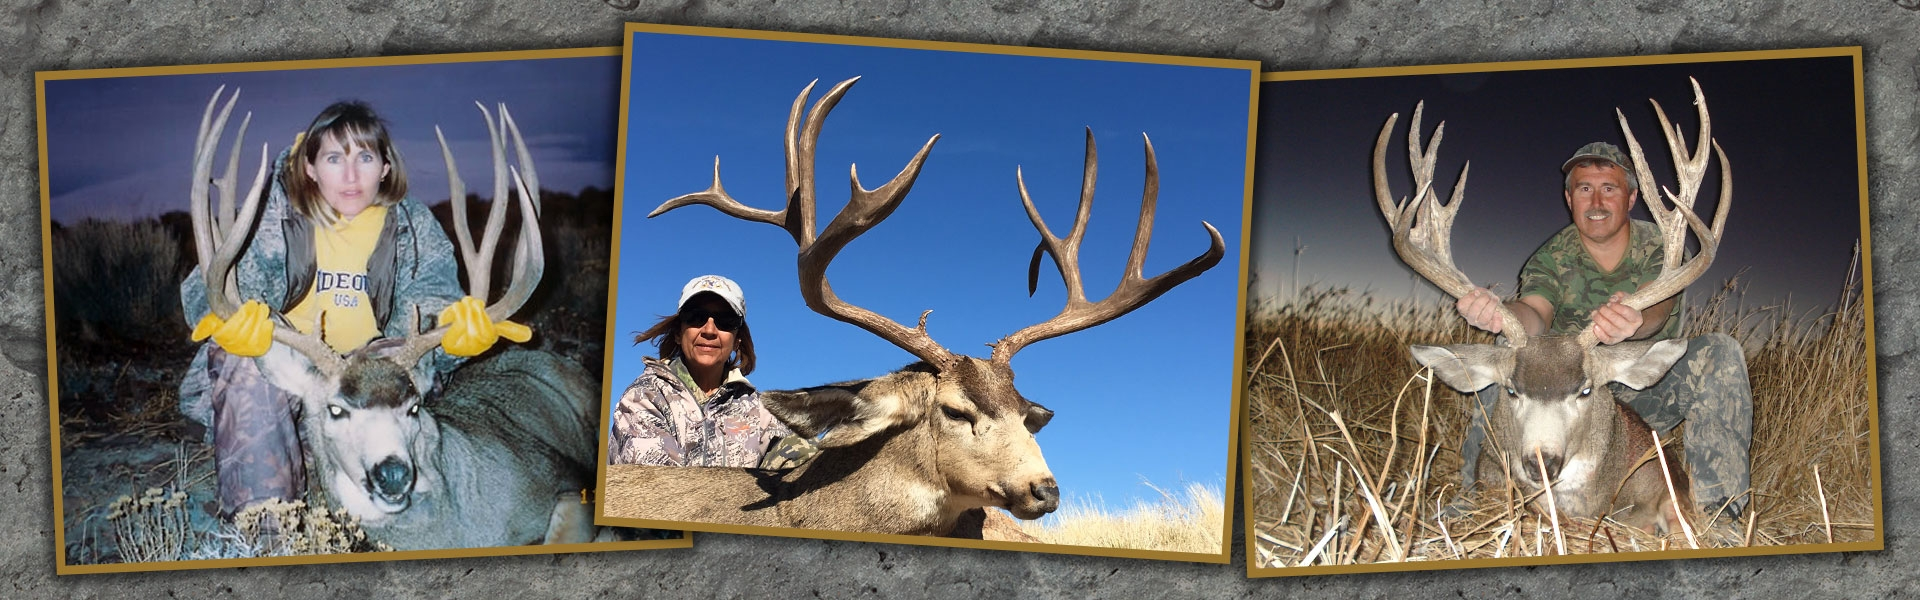 Nevada Mule Deer Hunts